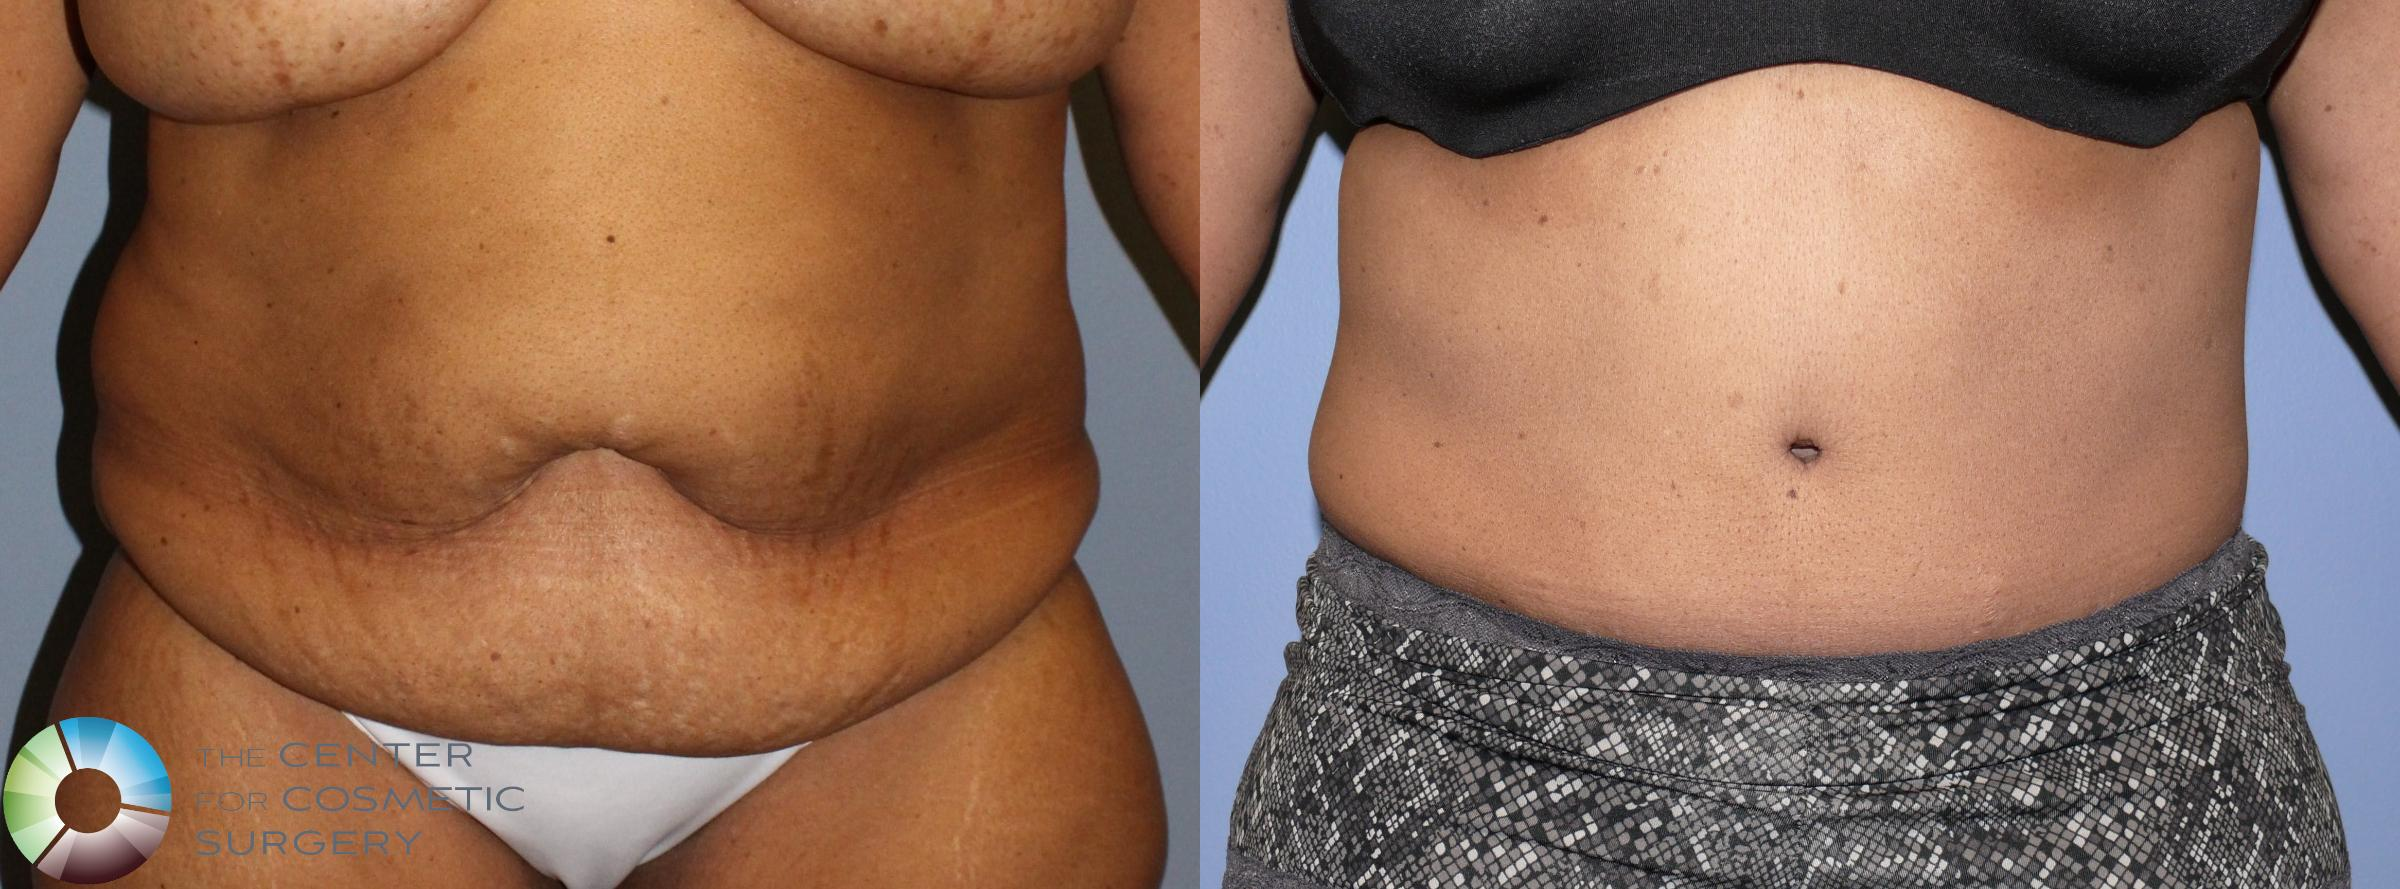 Tummy Tuck Case 923 Before & After View #1 | Golden, CO | The Center for Cosmetic Surgery